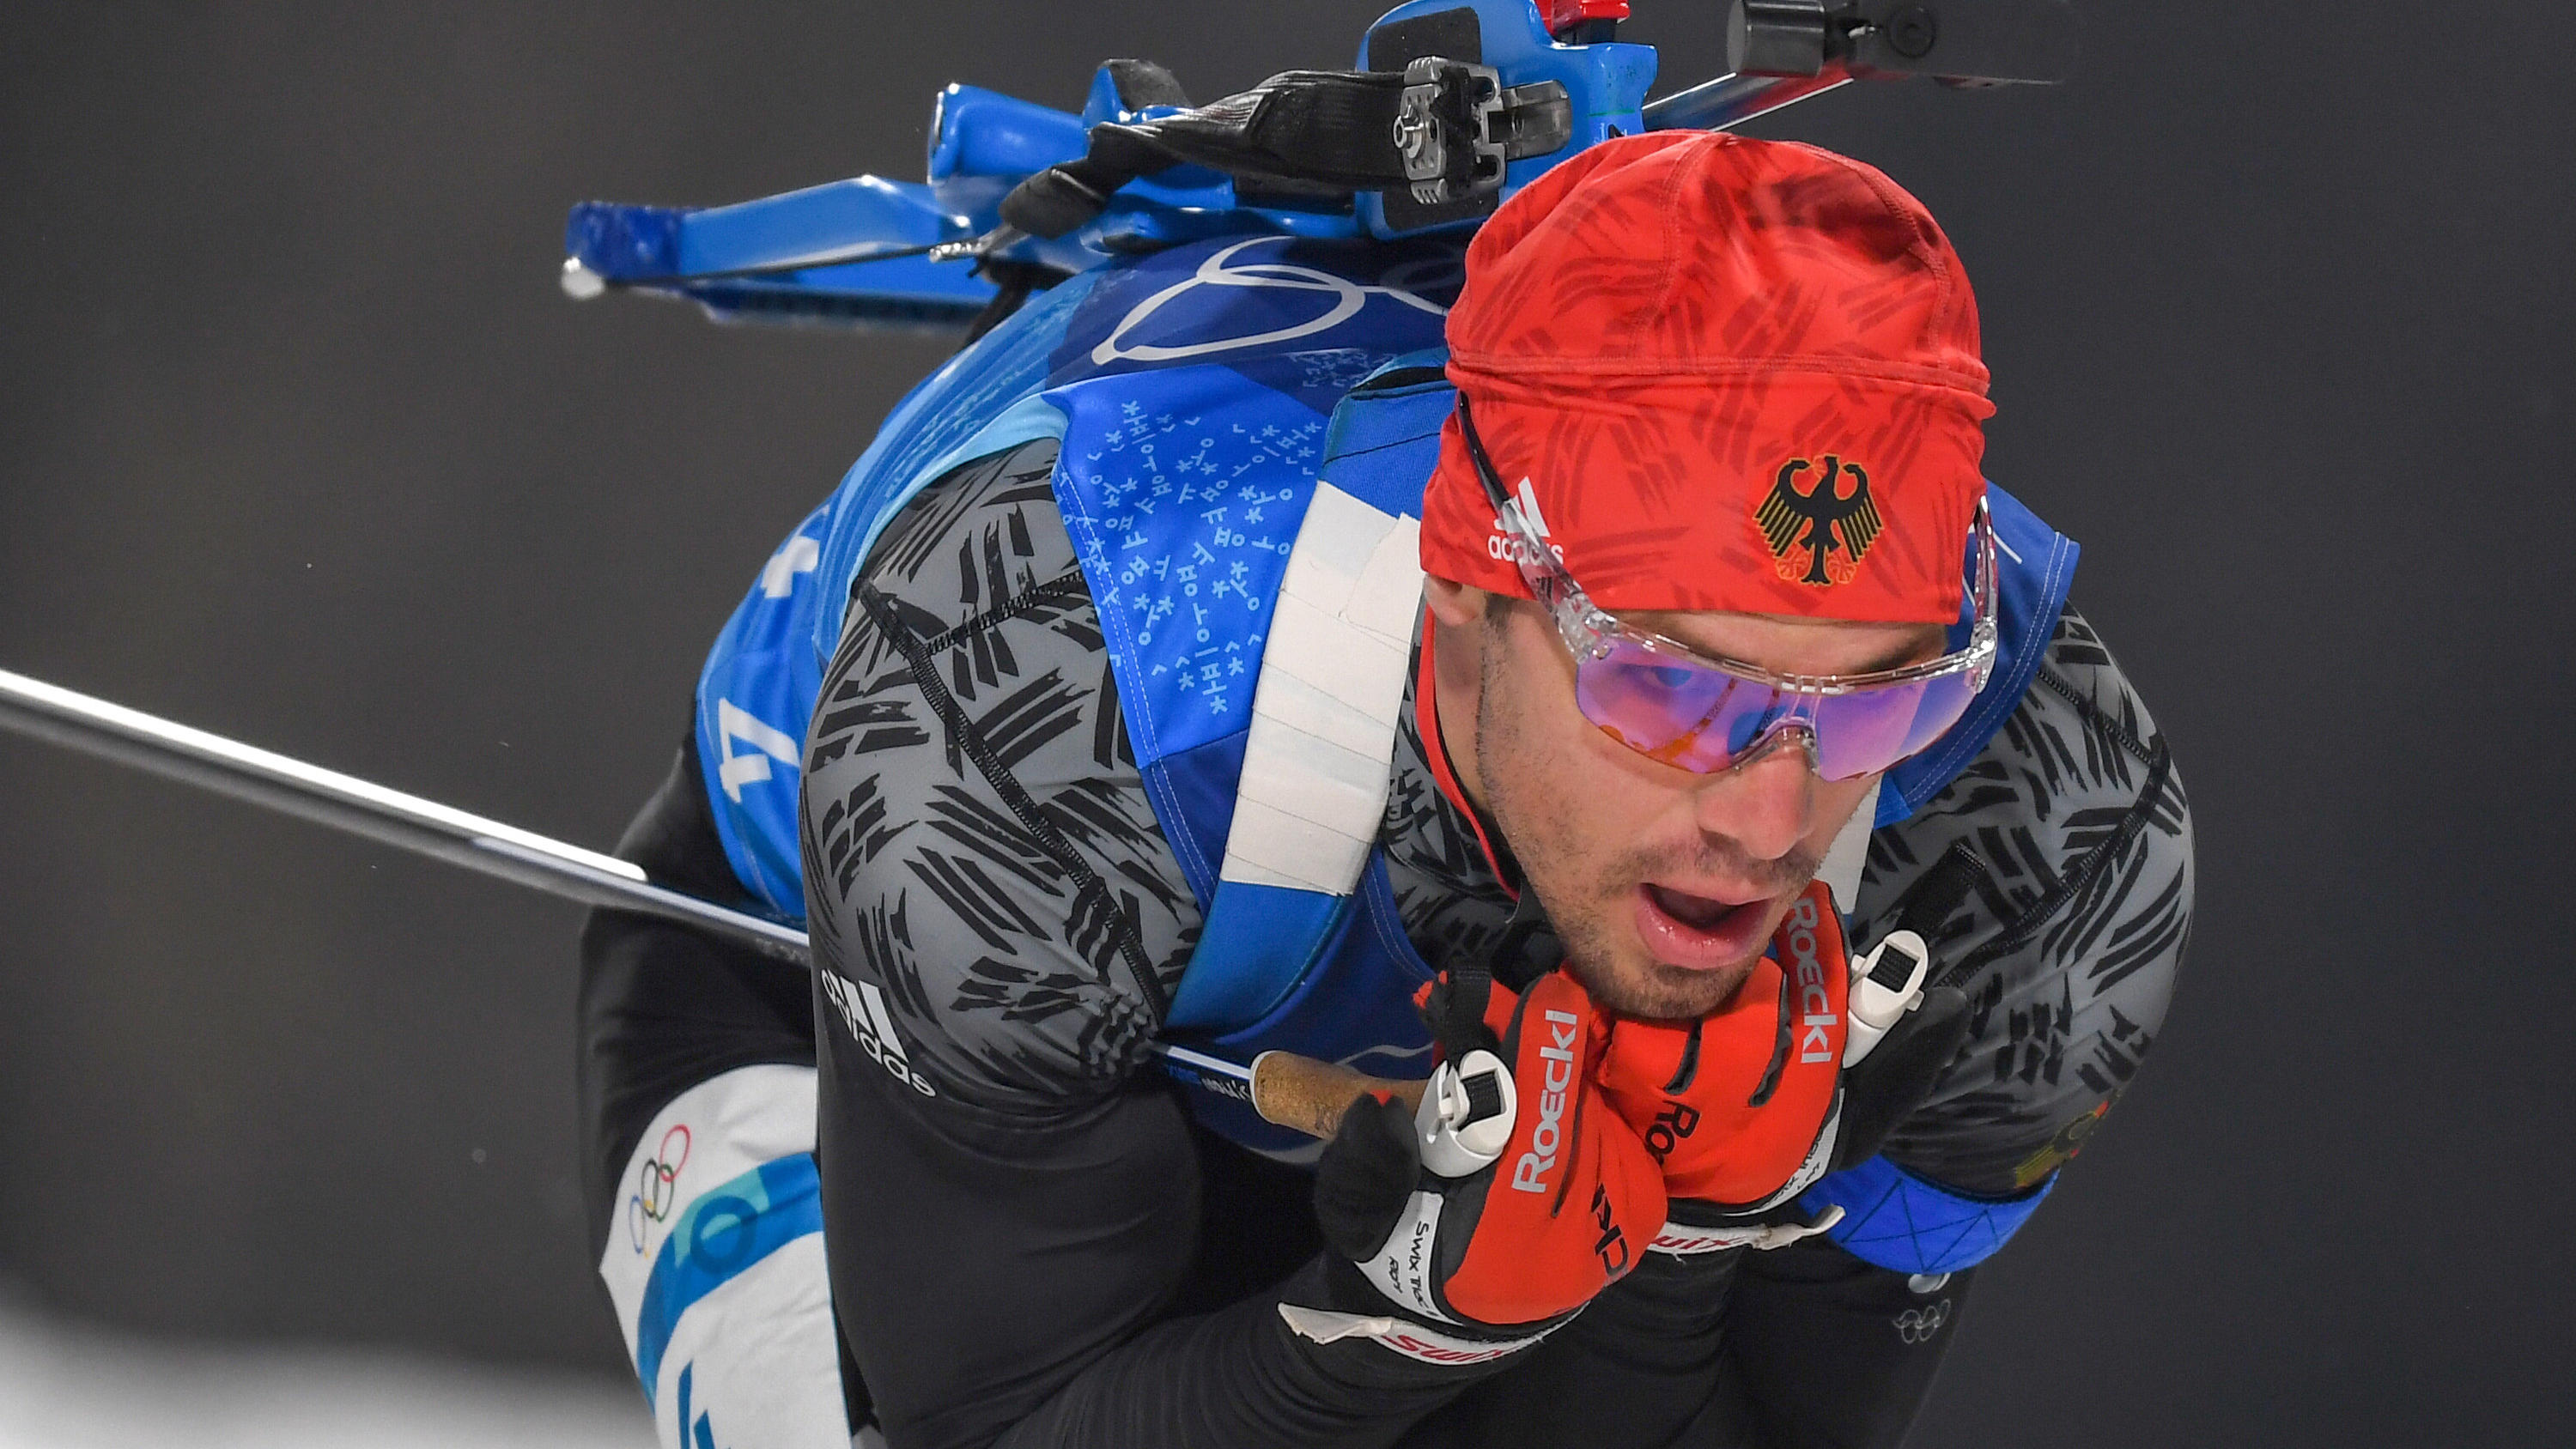 Deutsche Biathlon-Staffel holt Bronze